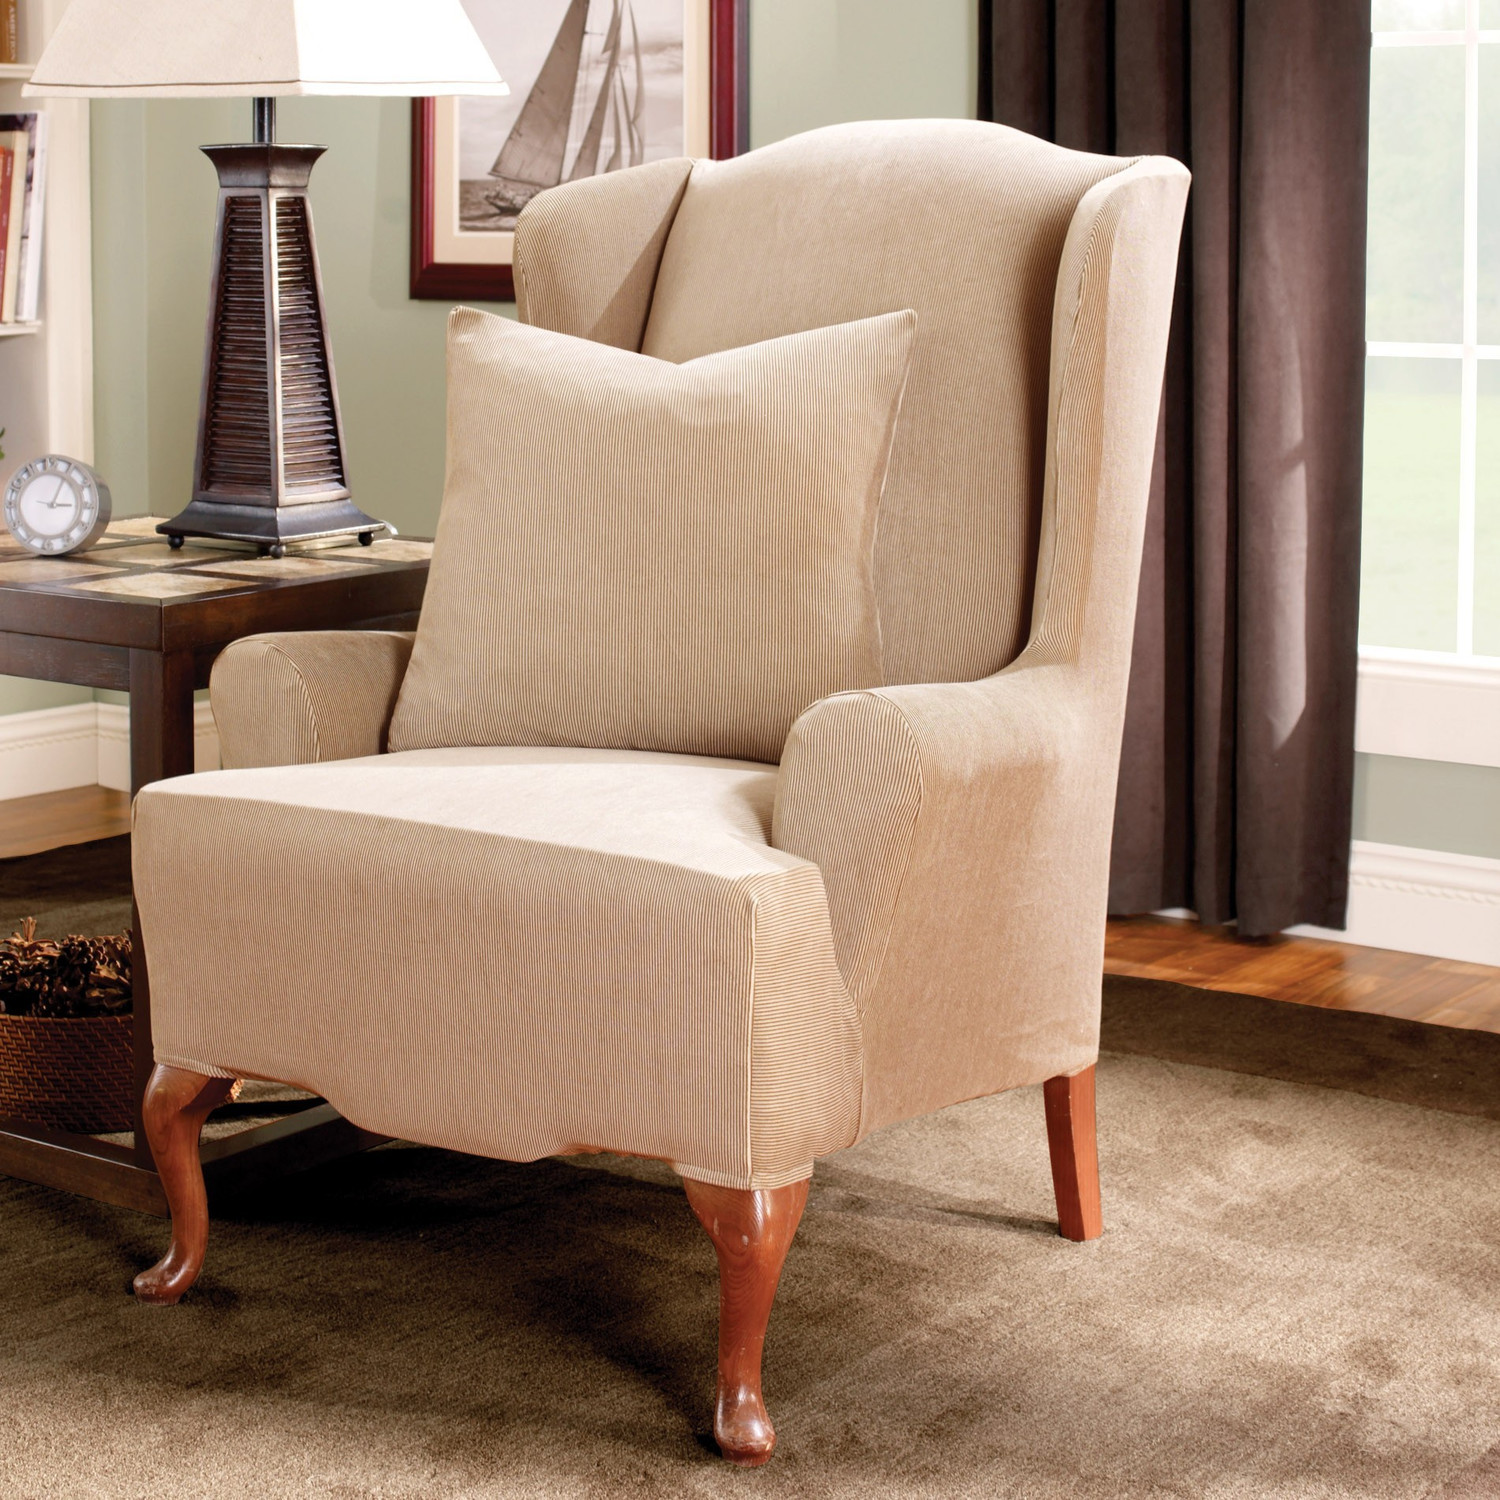 Image of: Wing Chair Recliner Furniture